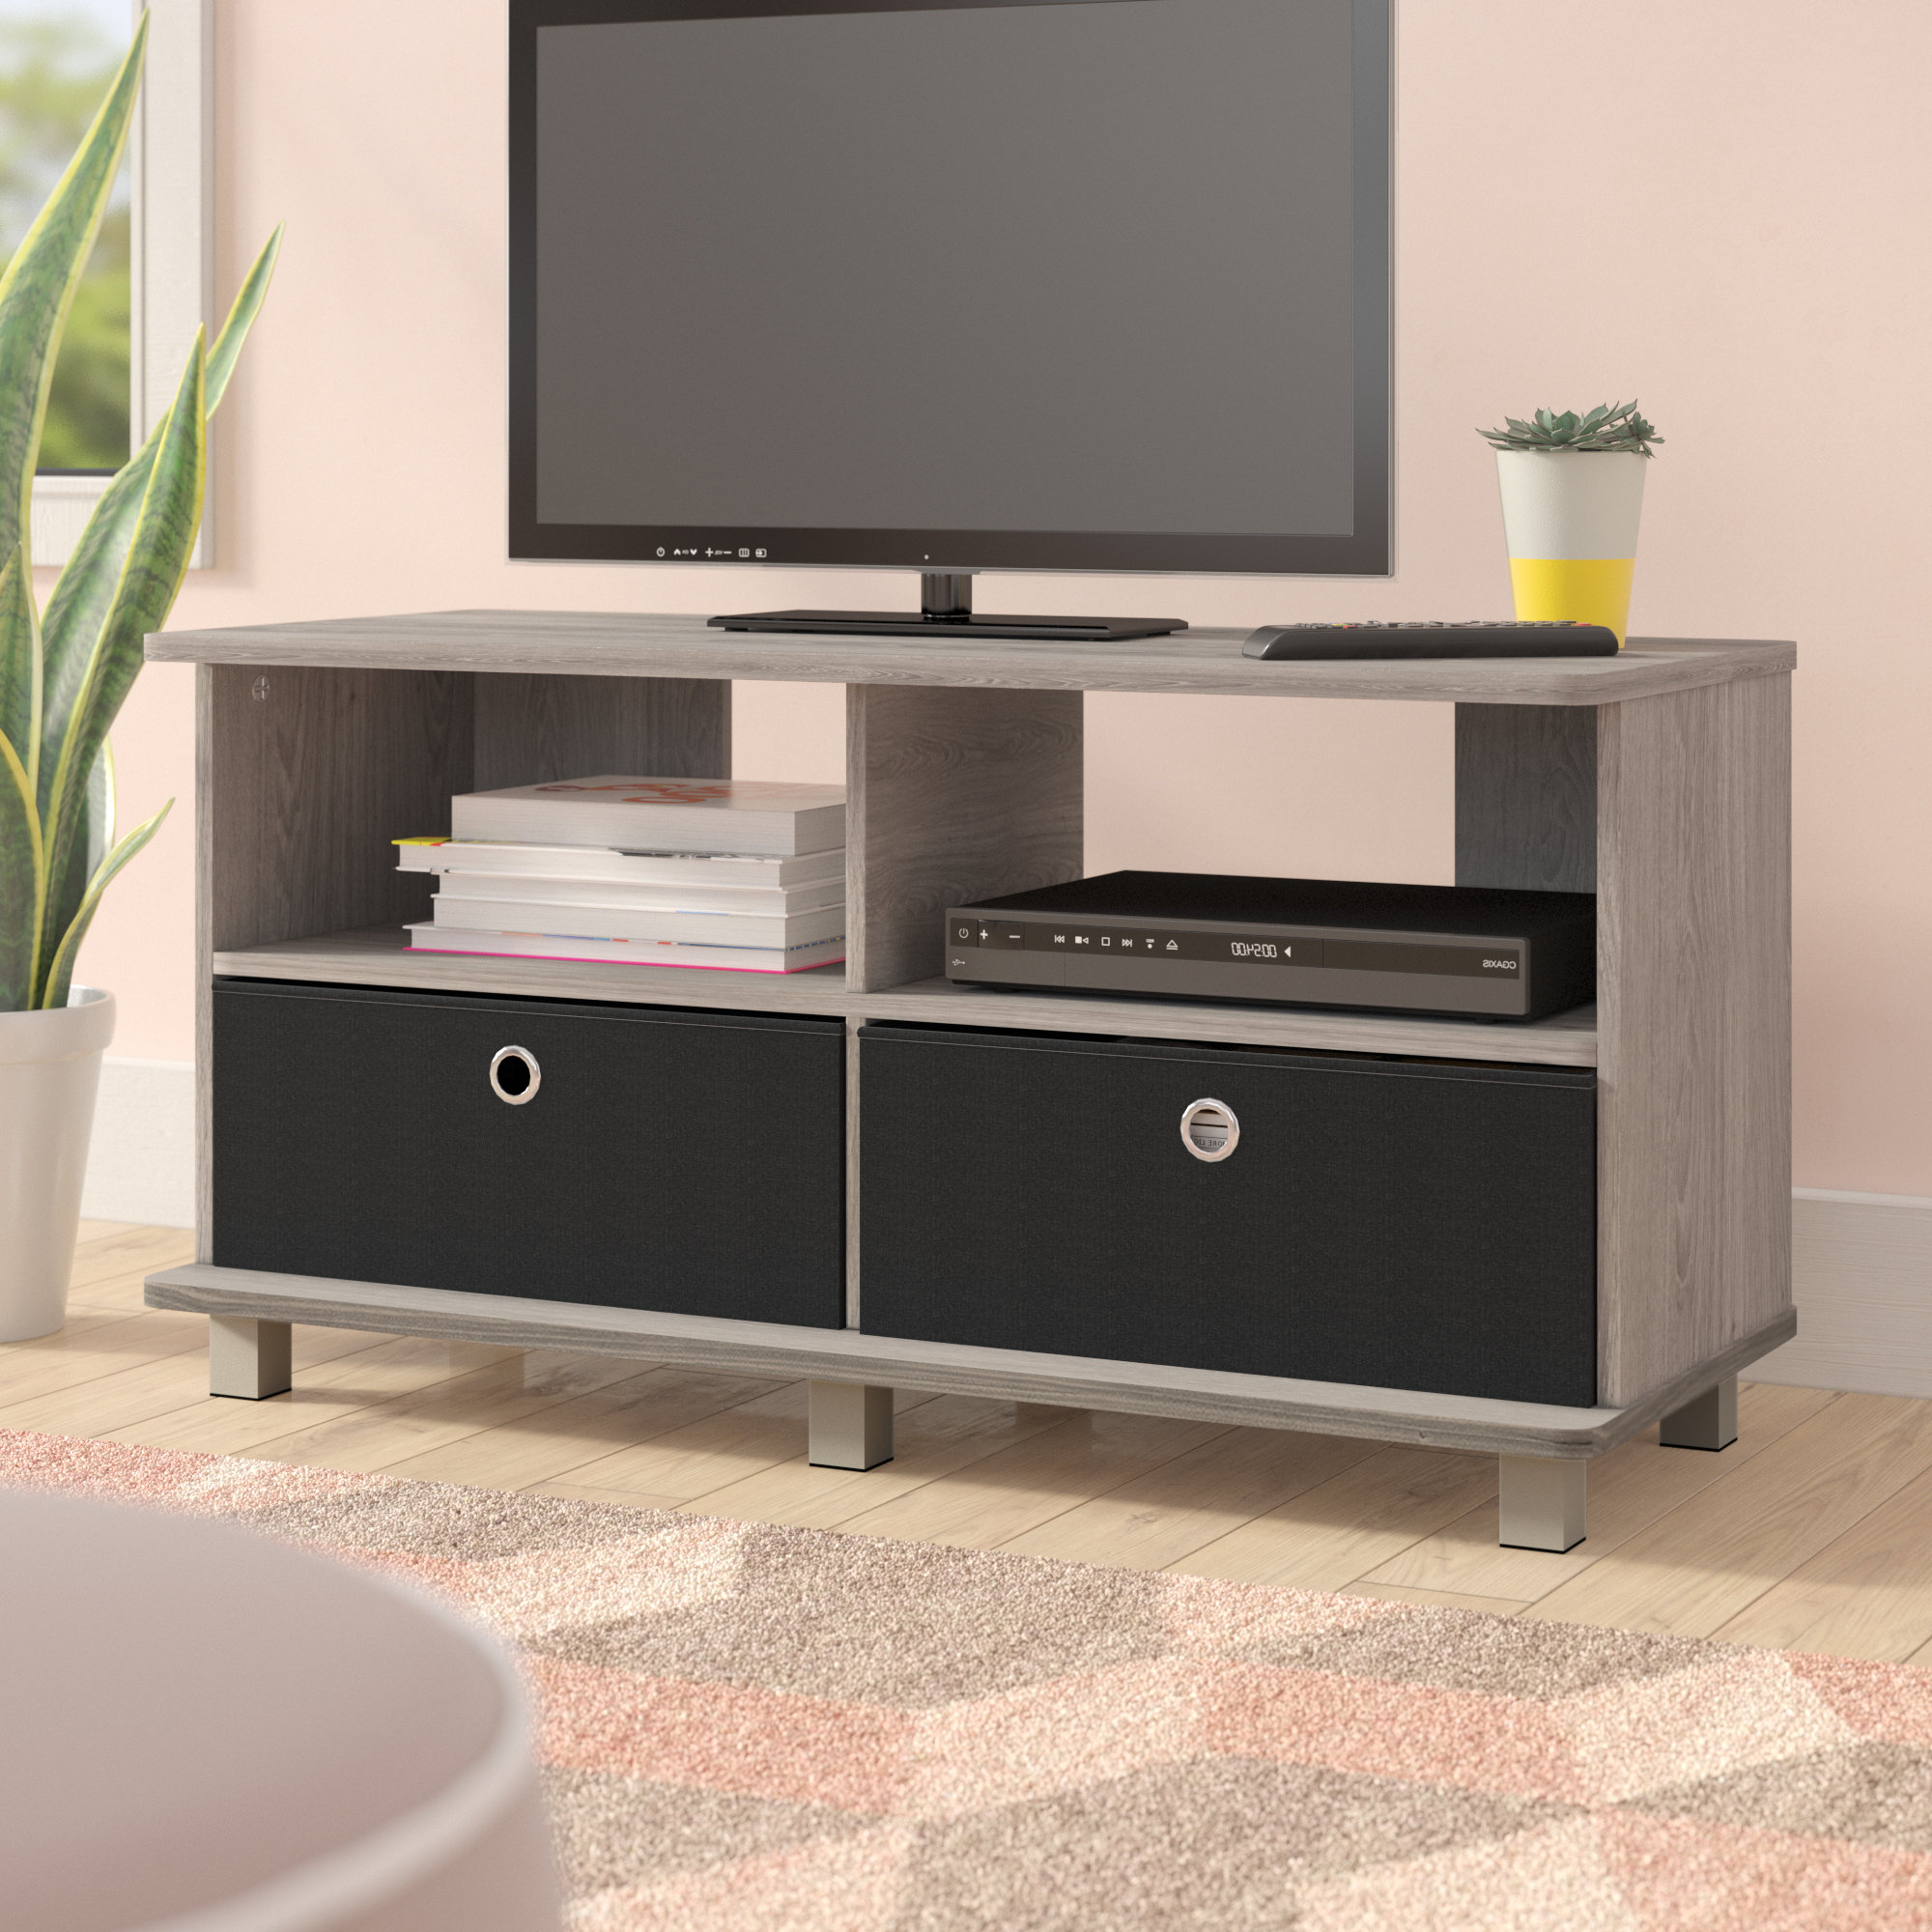 "Ebern Designs Mariaella Tv Stand For Tvs Up To 40"" & Reviews 